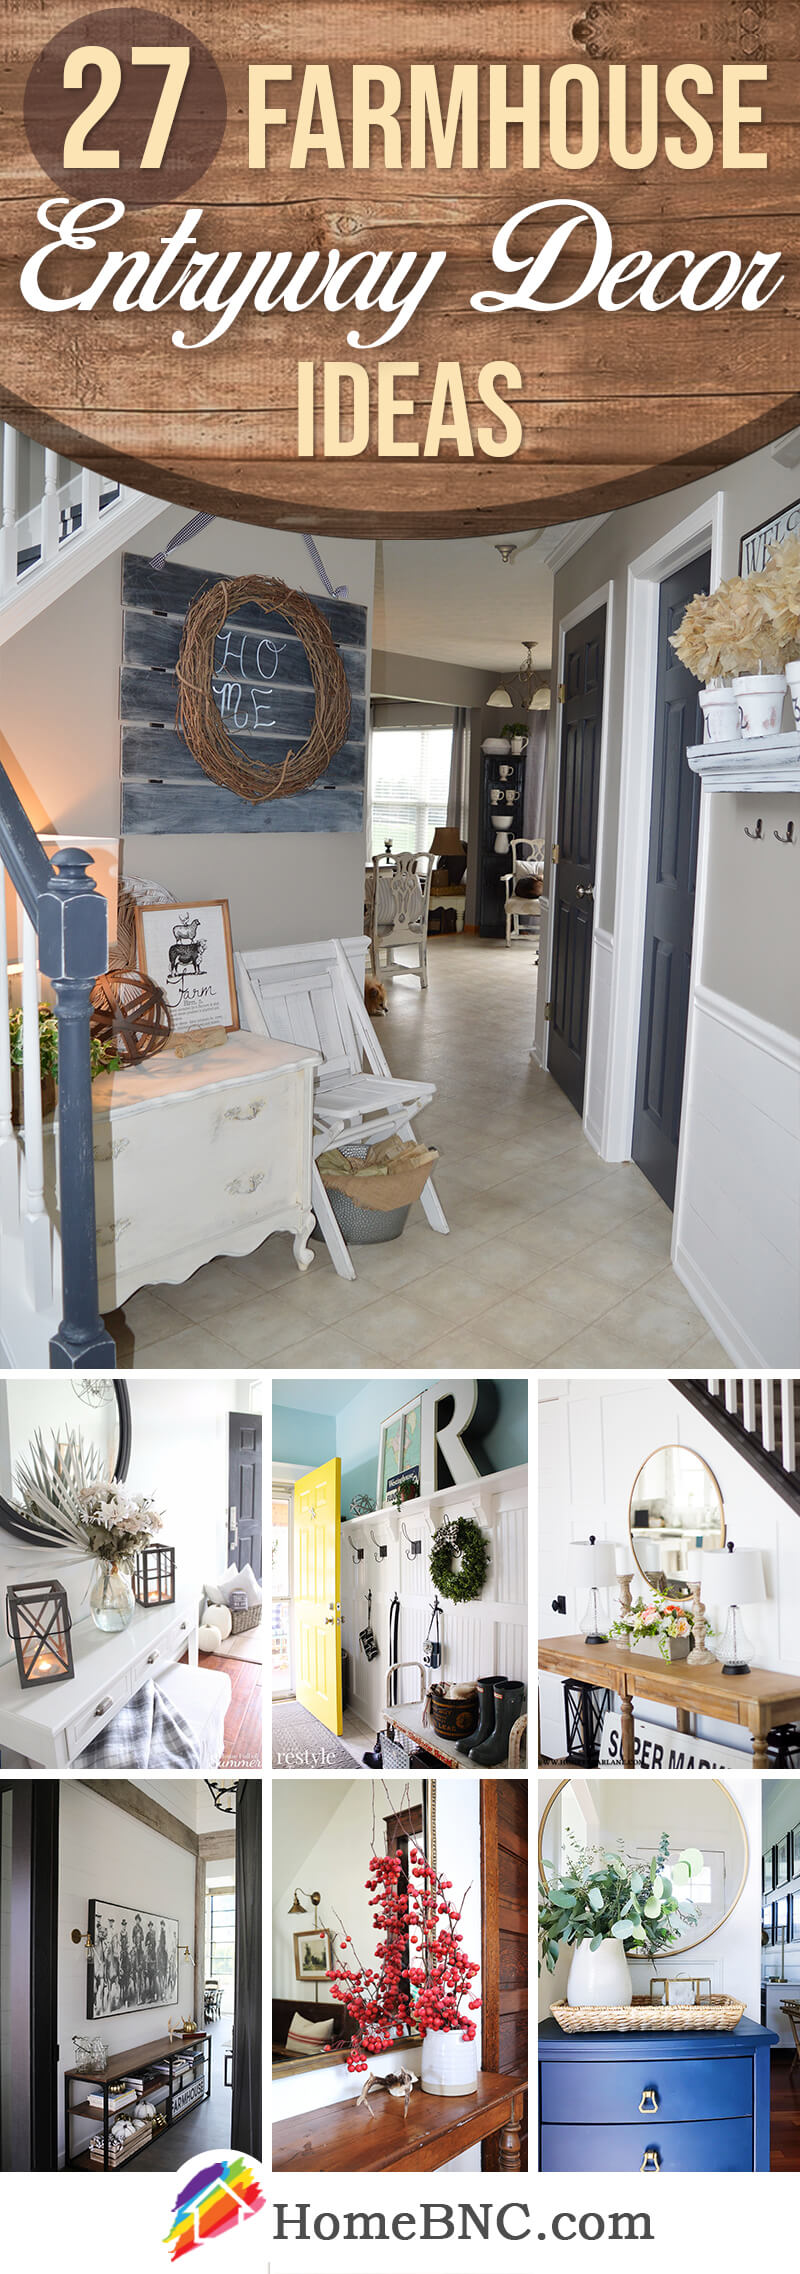 Farmhouse Entryway Decor Ideas